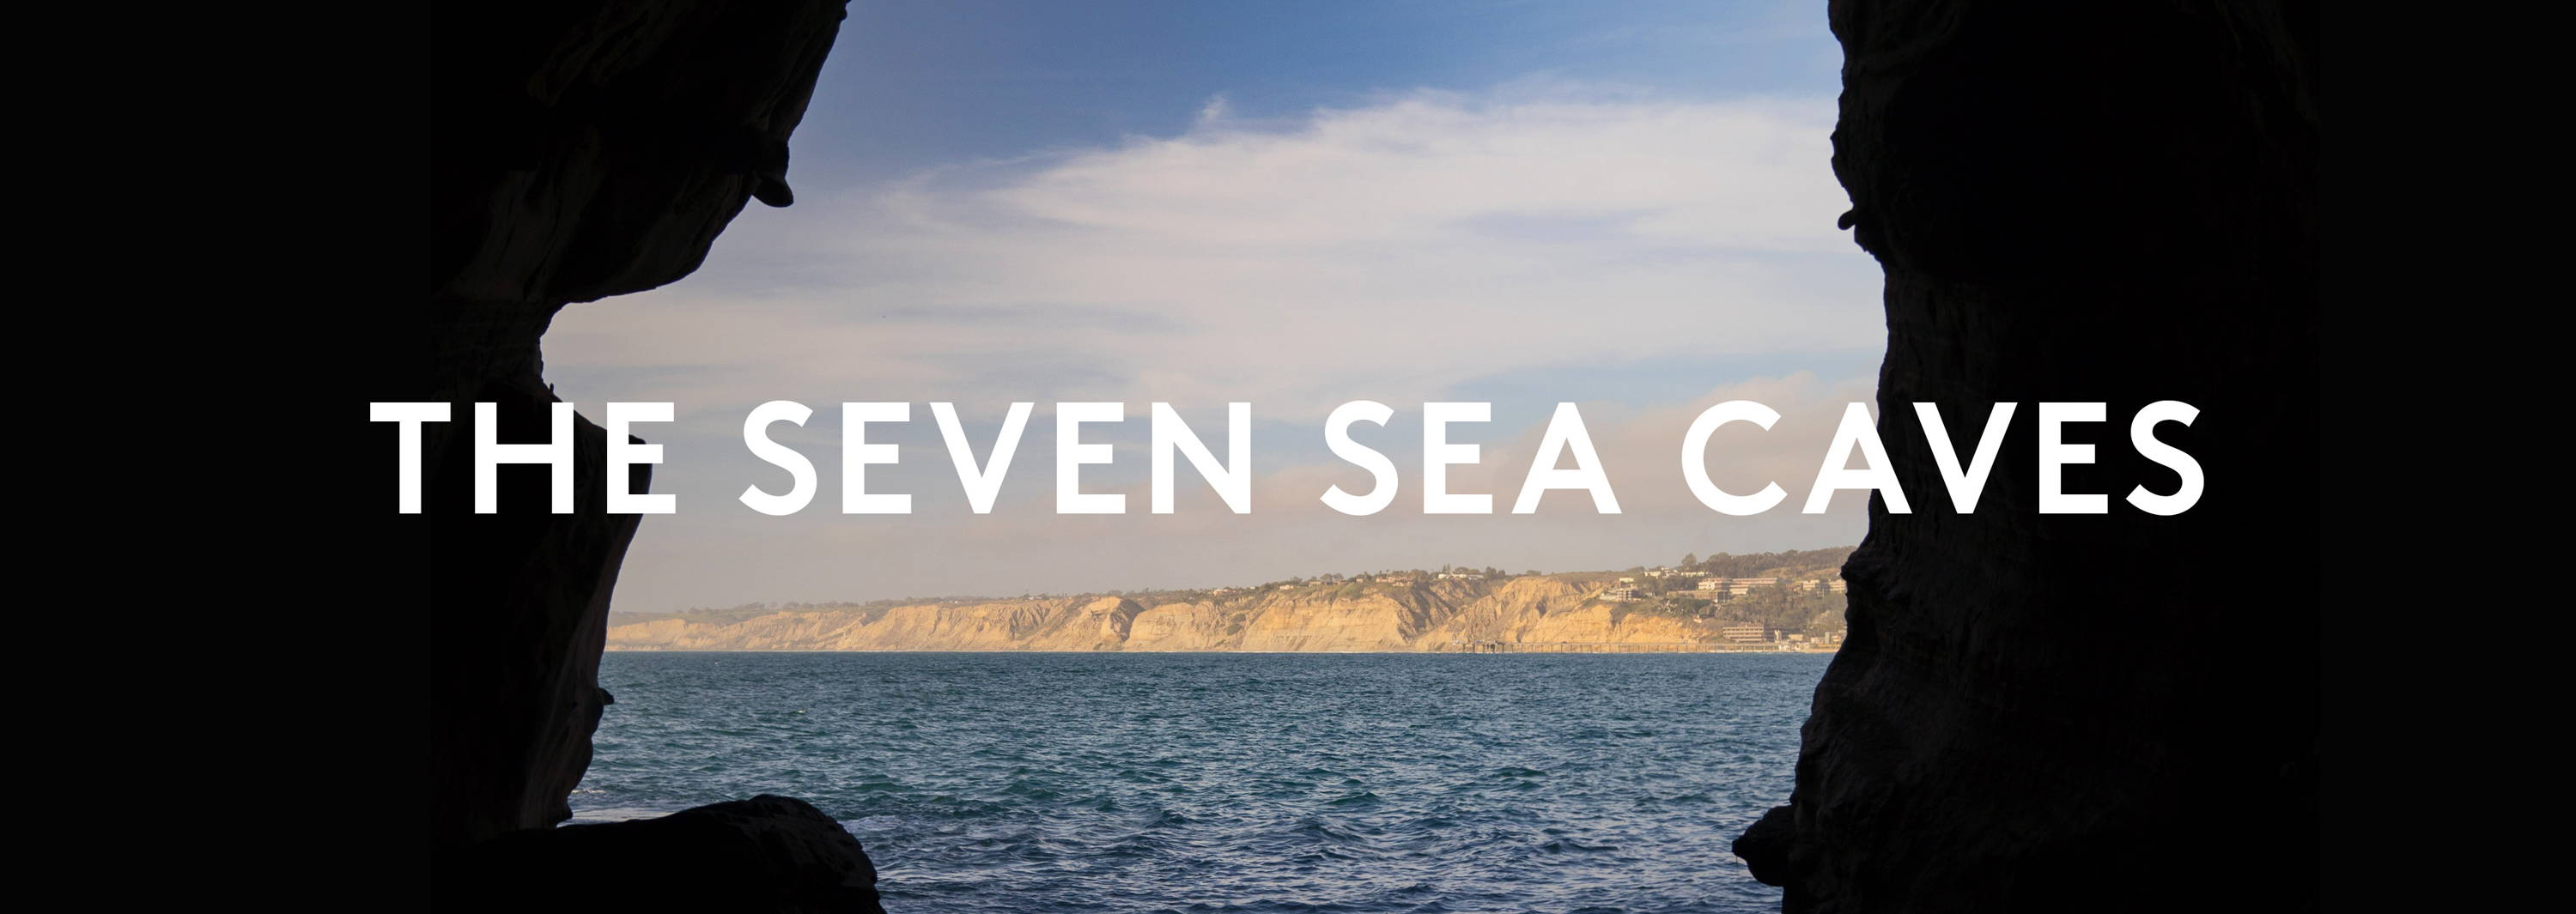 La Jolla's Seven Sea Caves